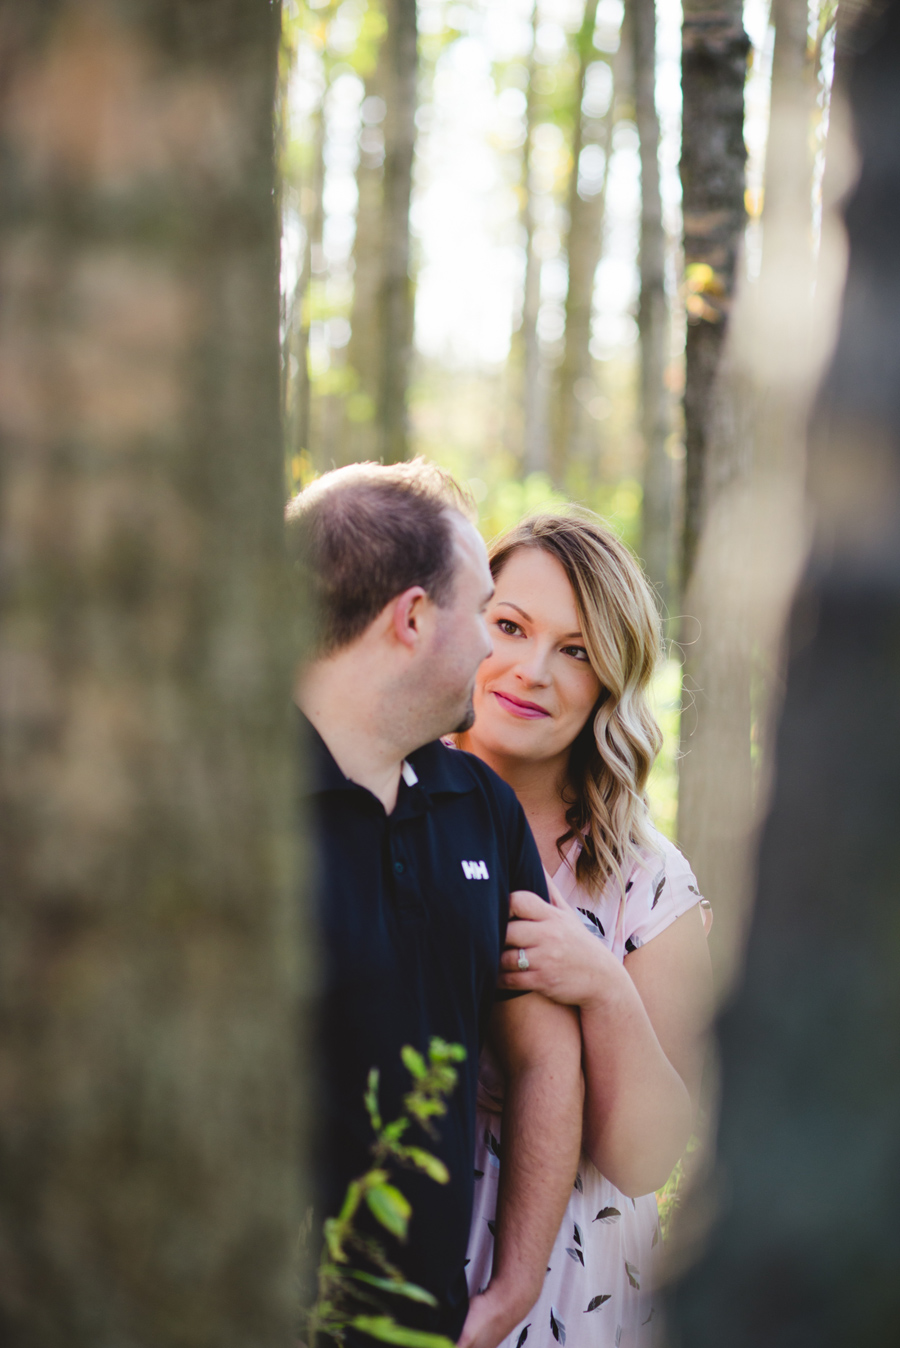 bbcollective_yeg_2016_marilynandian_engagement_photography007.jpg